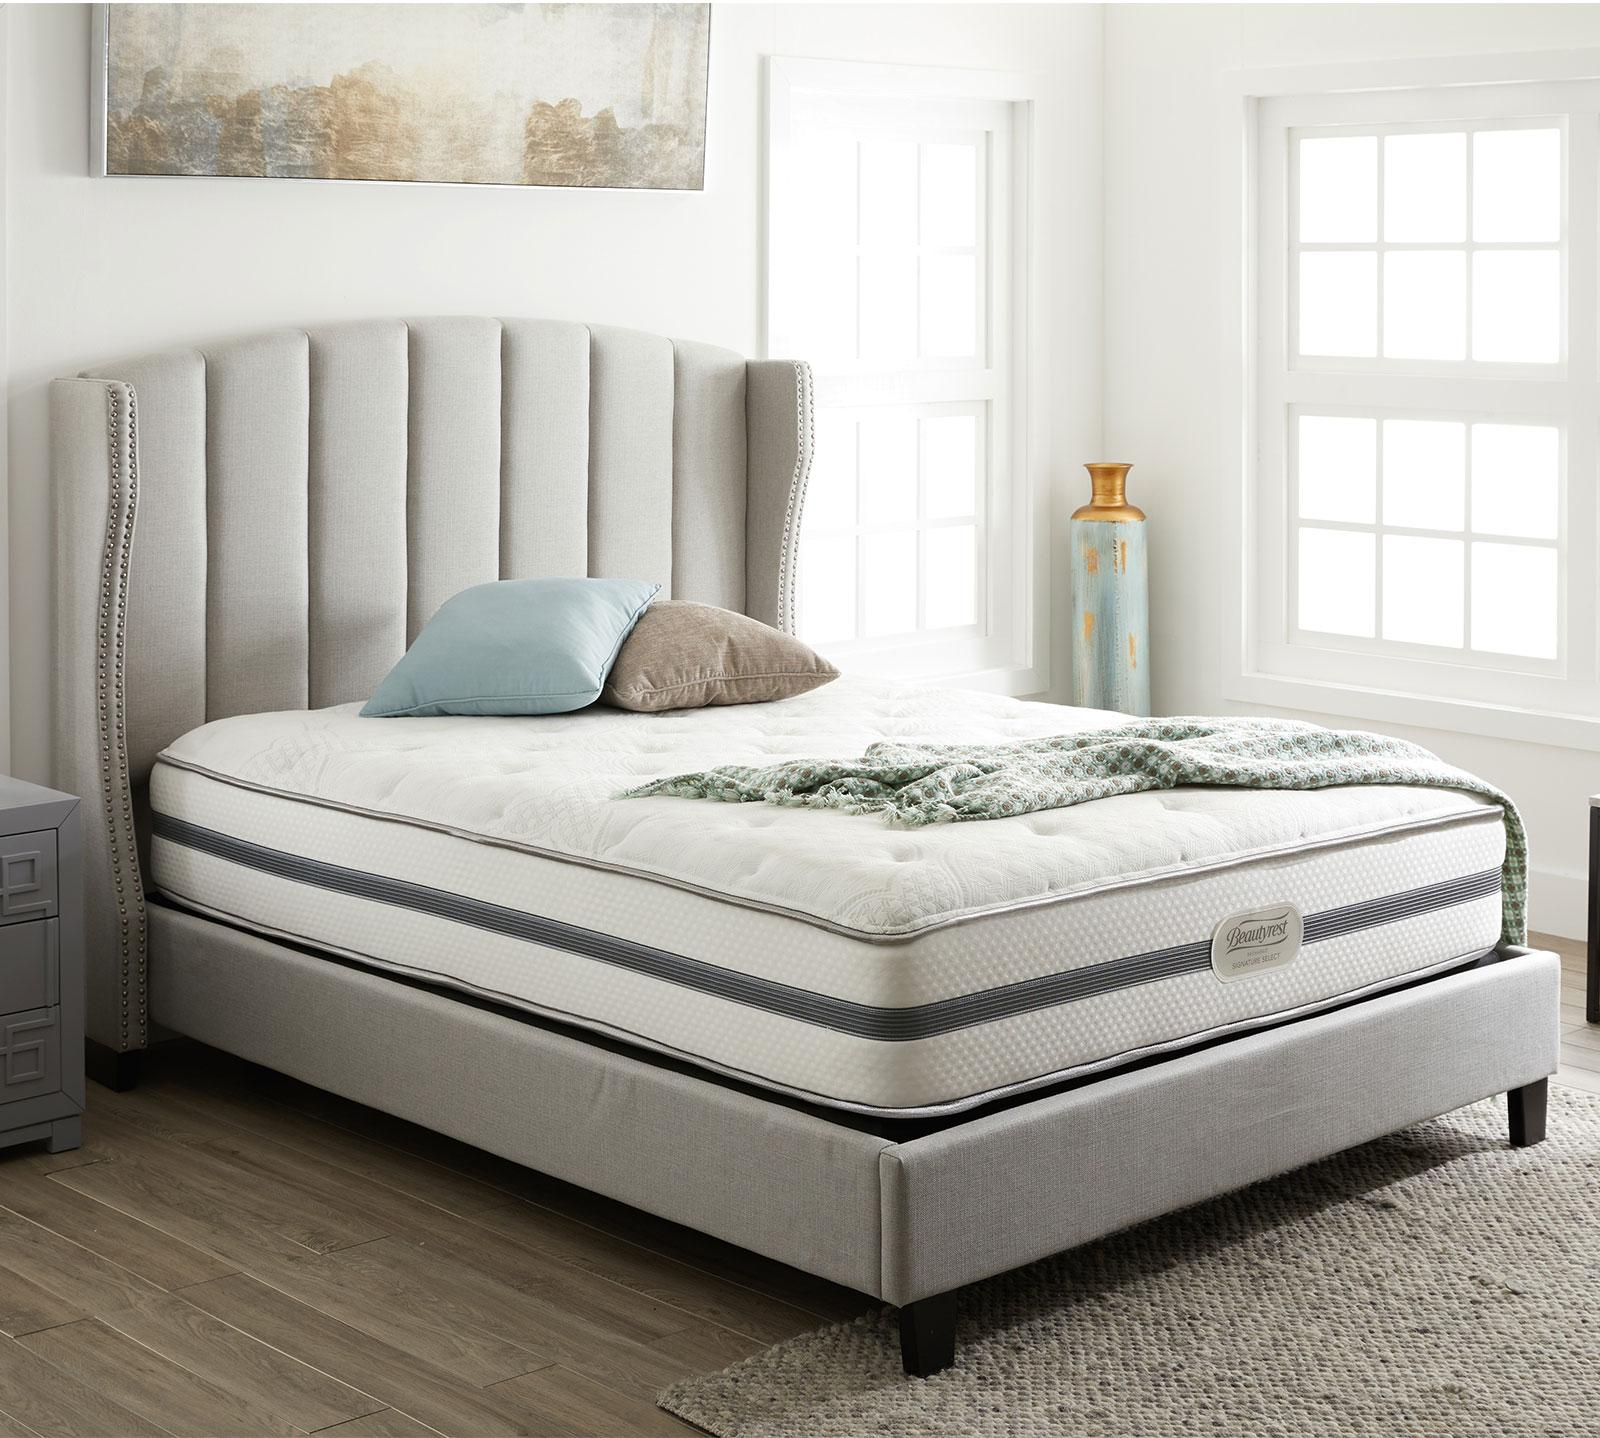 Queen Size Bed With Mattress Recharge Signature Select Ashaway 11 Quot Plush Mattress